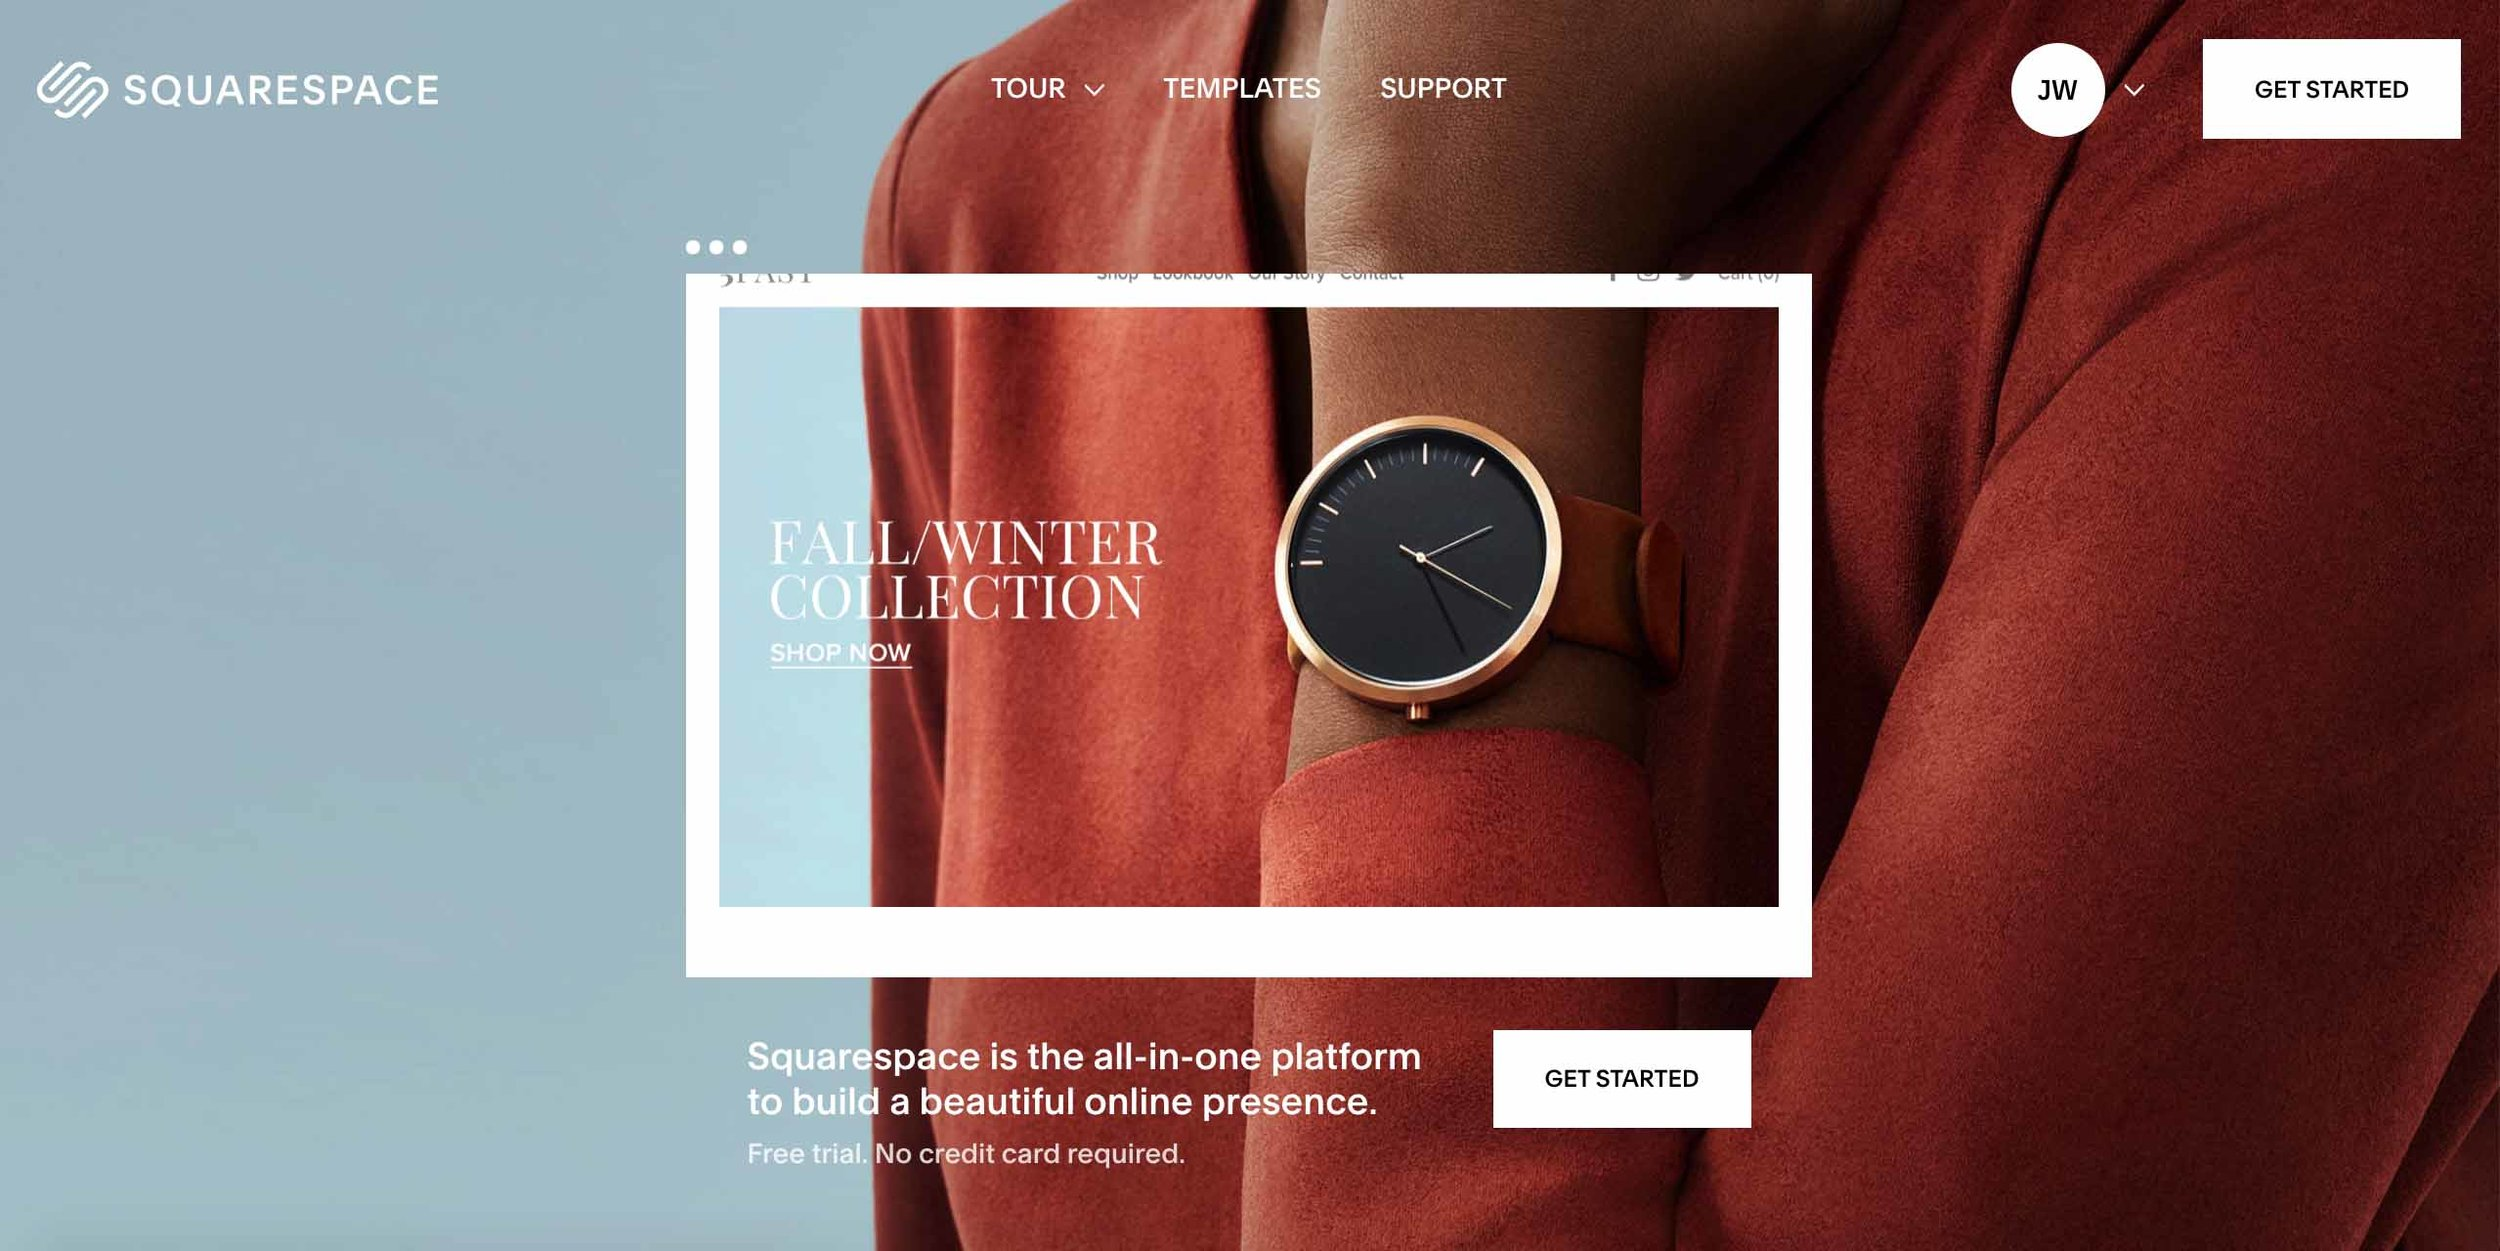 squarespace - We create all of our website on Squarespace. This robust and dynamic platform allows us to create a modern design, with custom CSS, and powerful SEO.